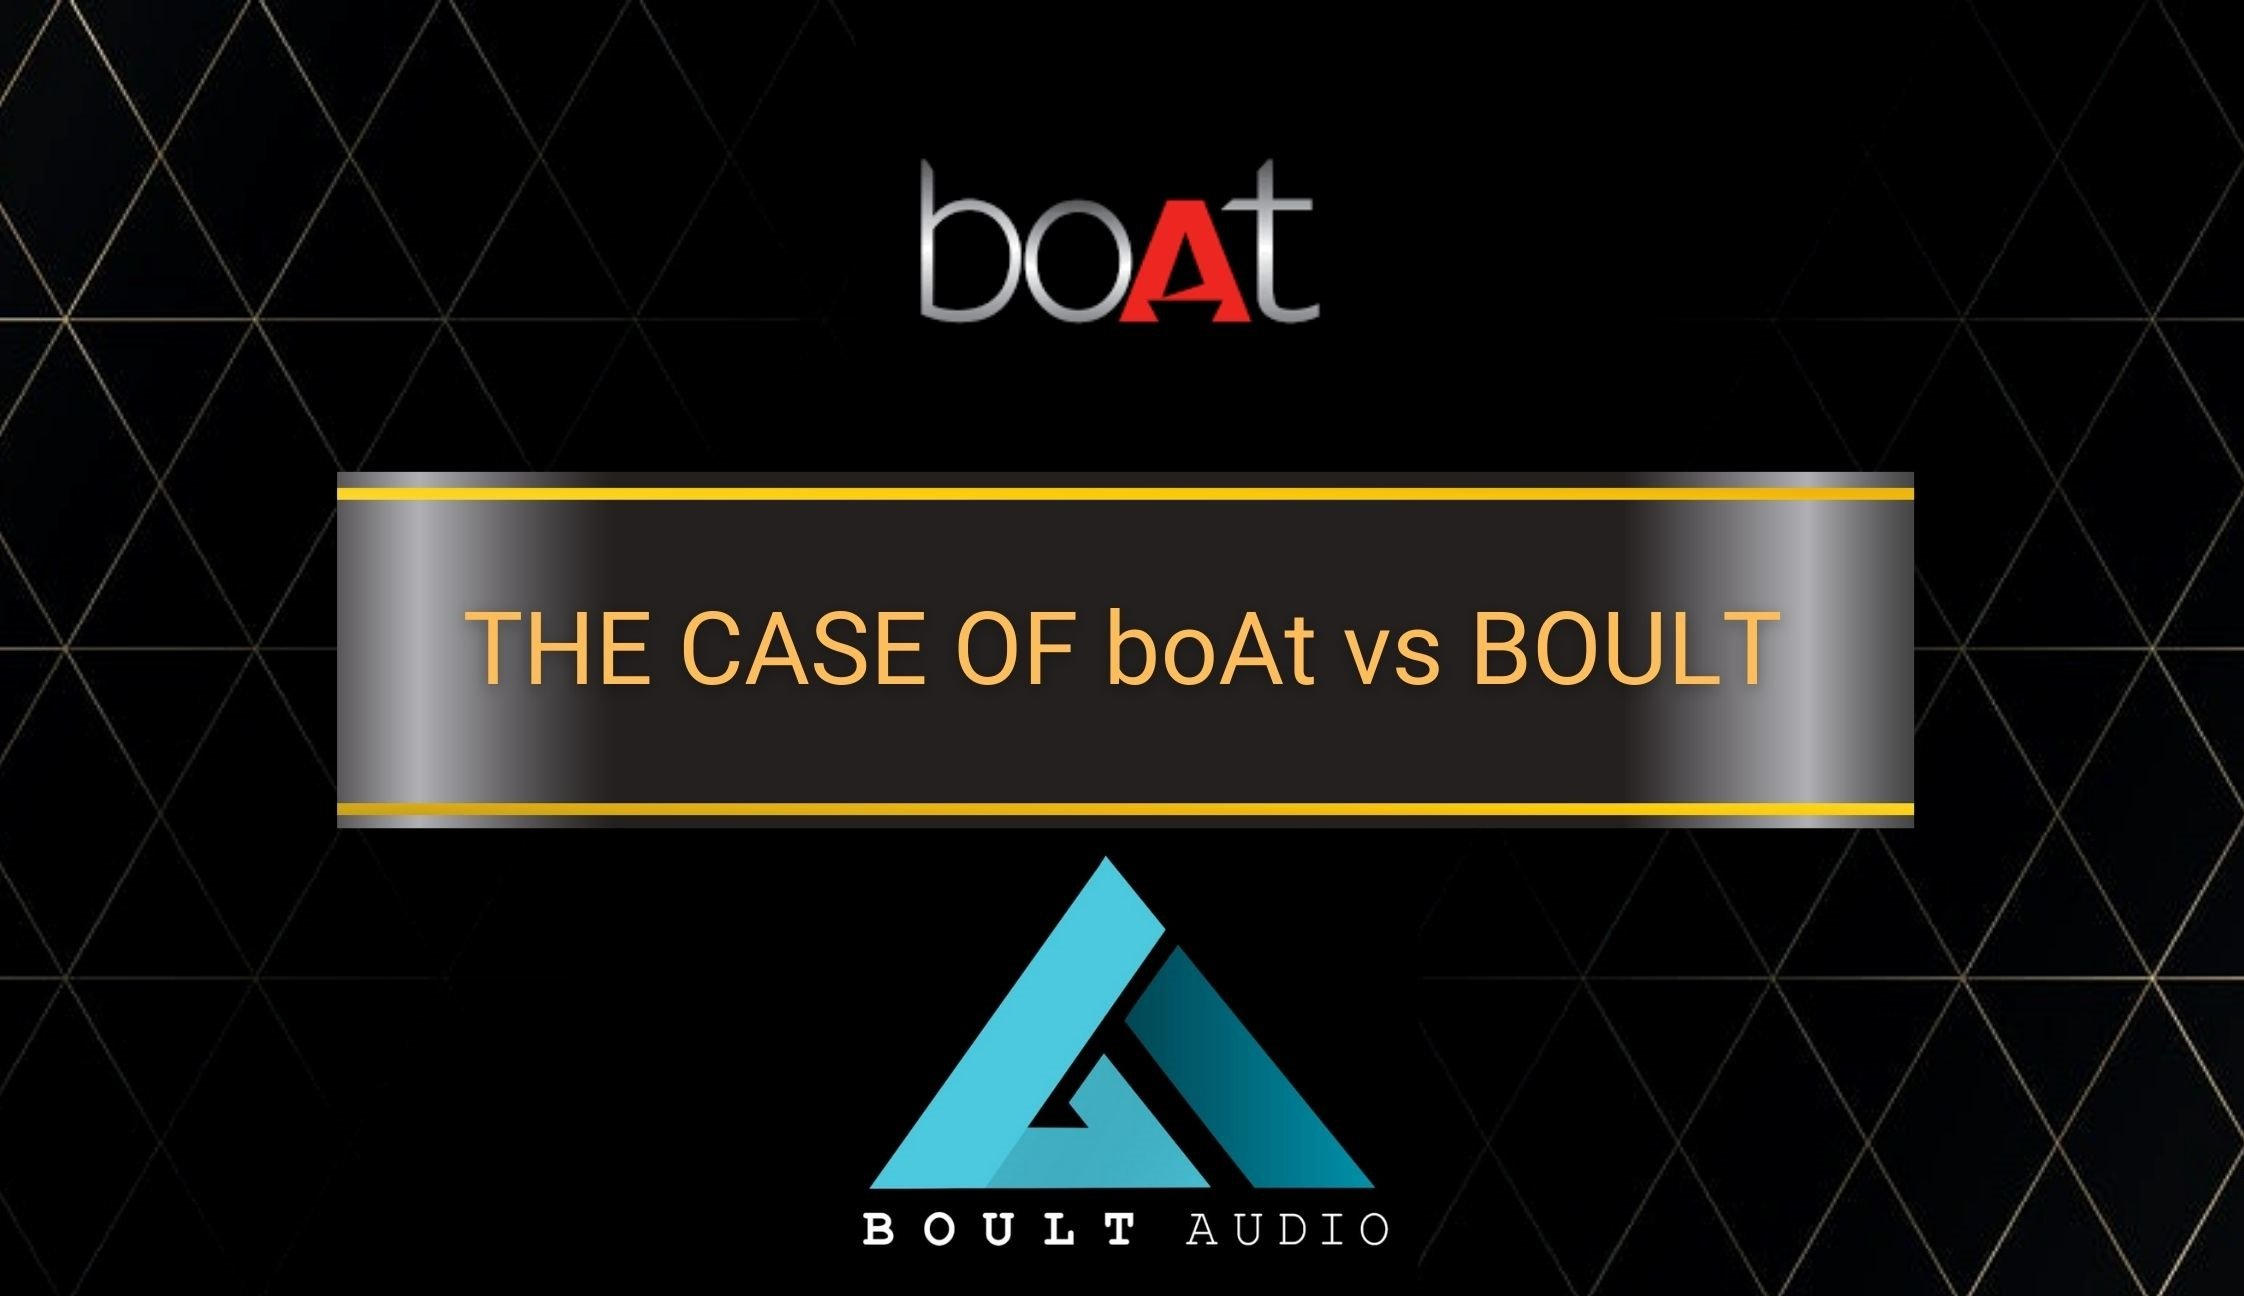 THE CASE OF boAt vs BOULT